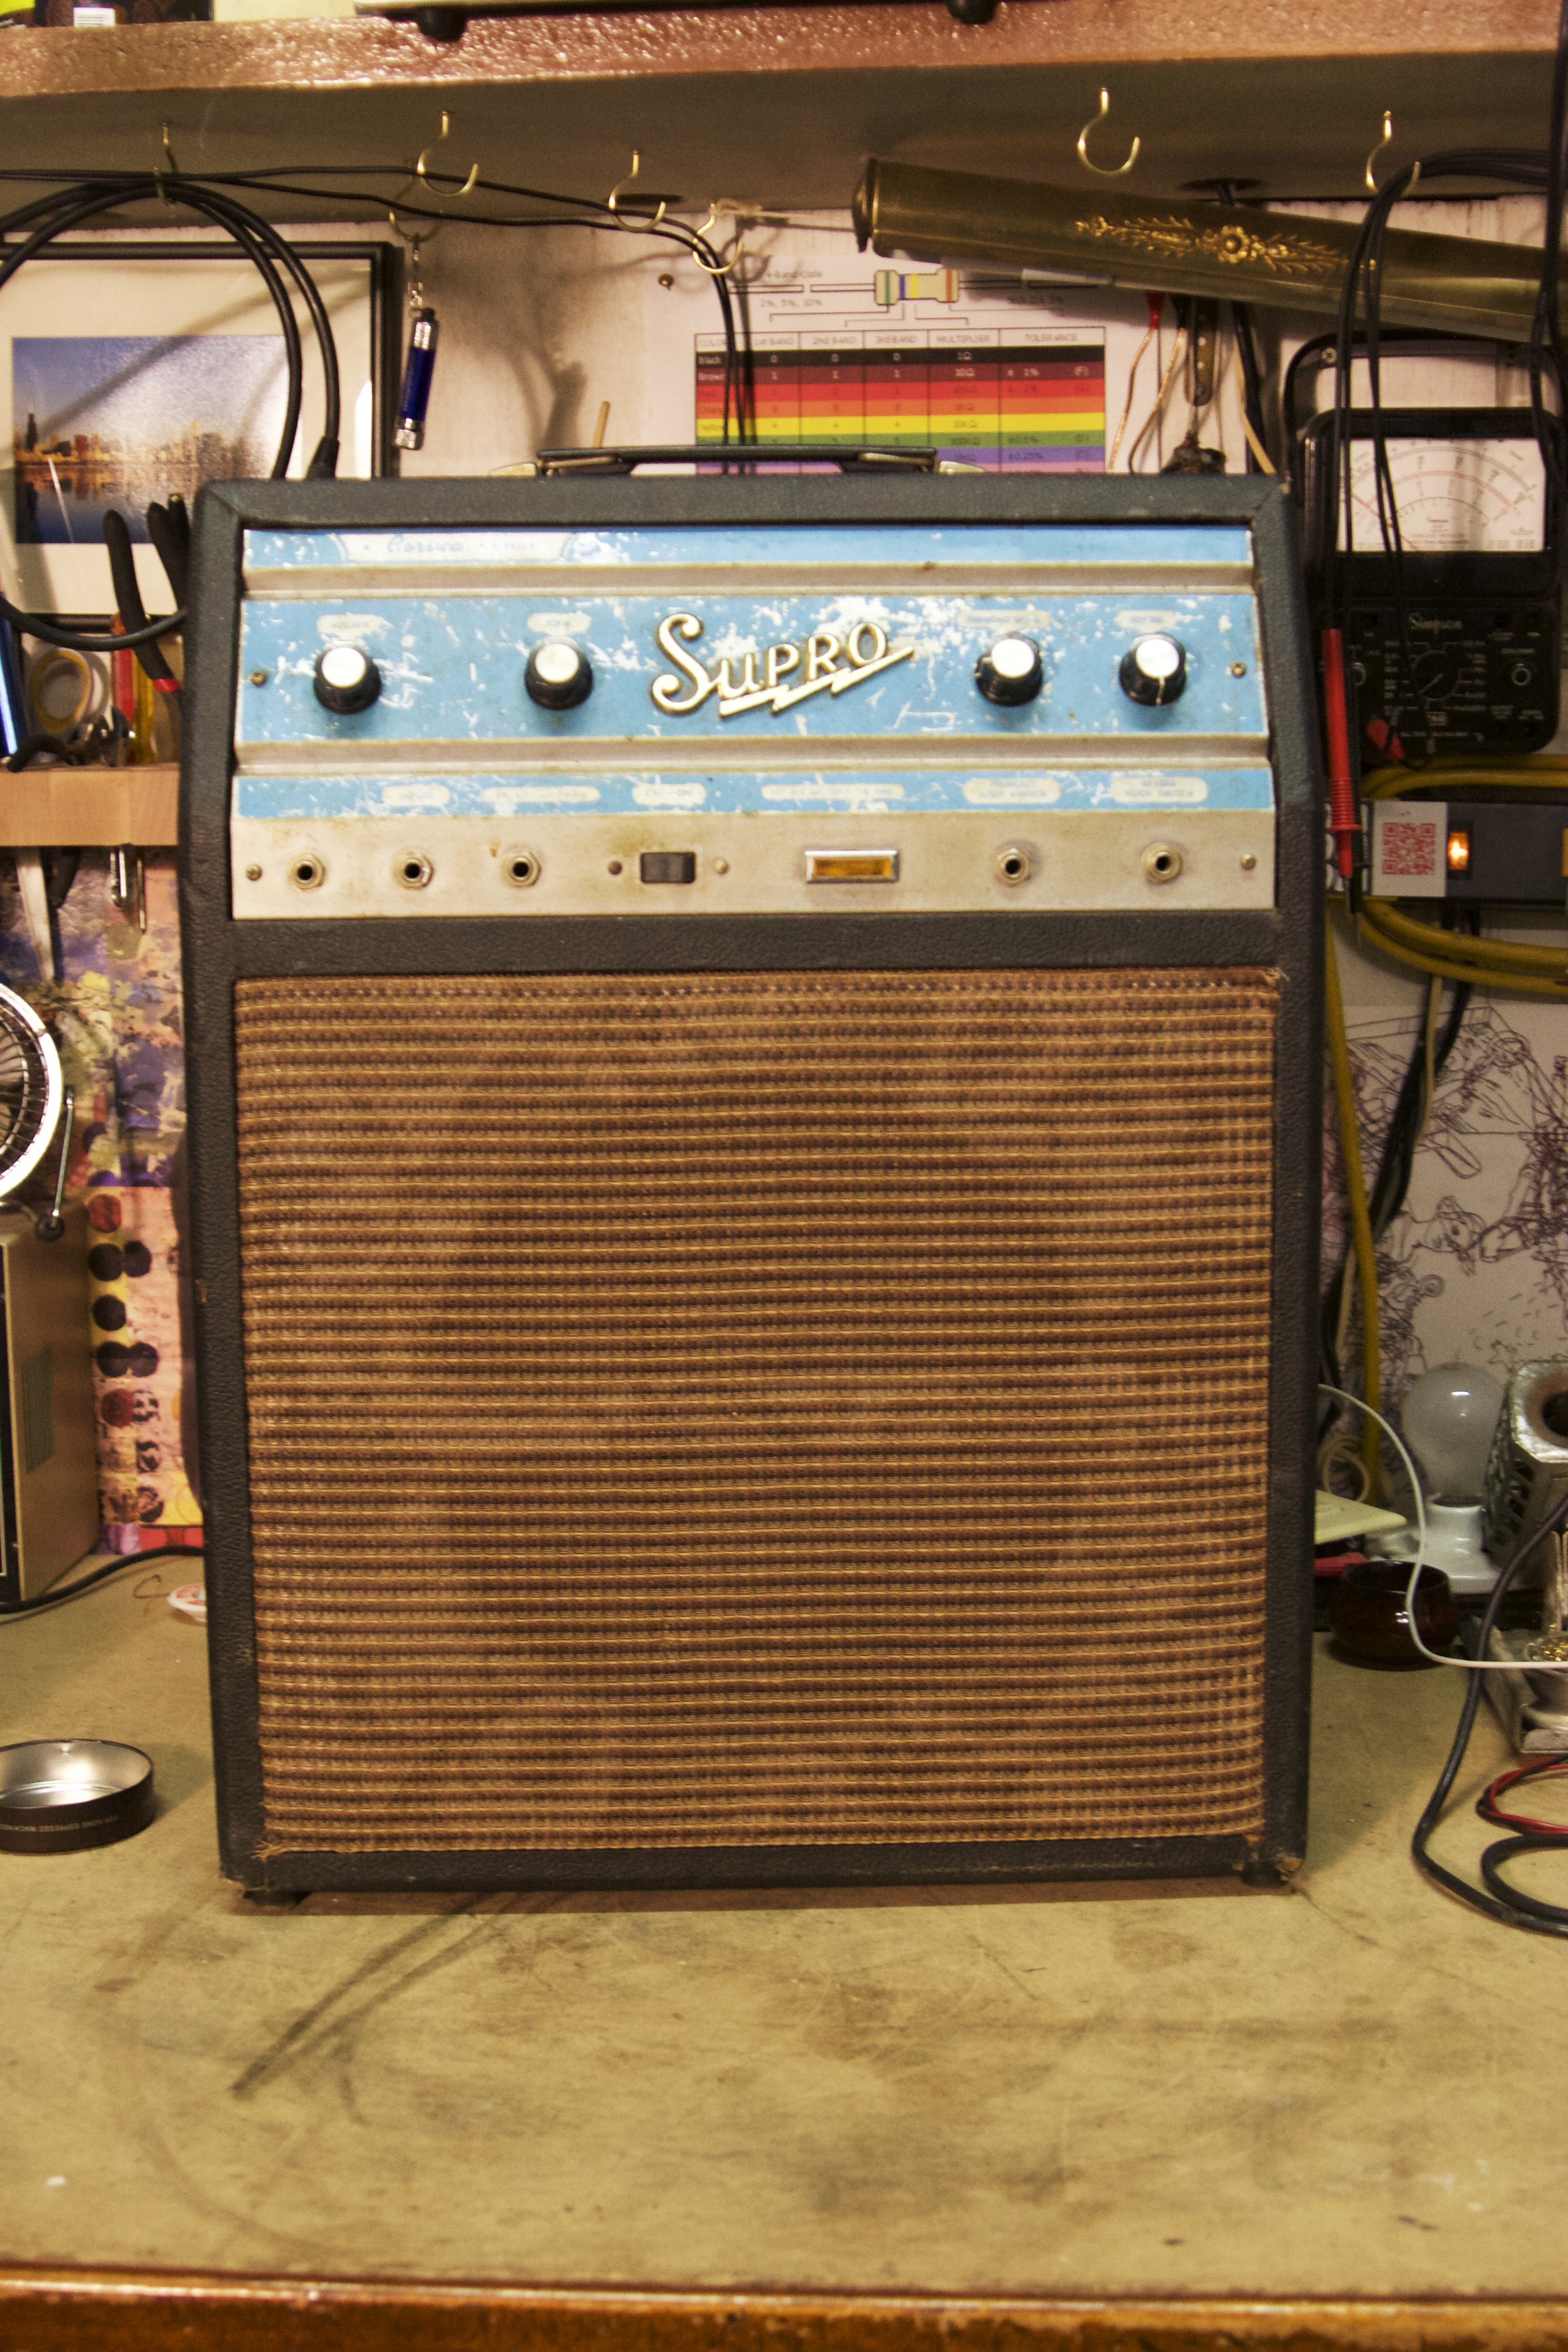 Supro Corsica S6622 Iration Audio Sears Silver Tone Guitar On Schematic Of Electric Tremolo Knobs The Right Are And Reverb Left Volume A Lot These Old Amps Need To Have Cathode Resistor For Power